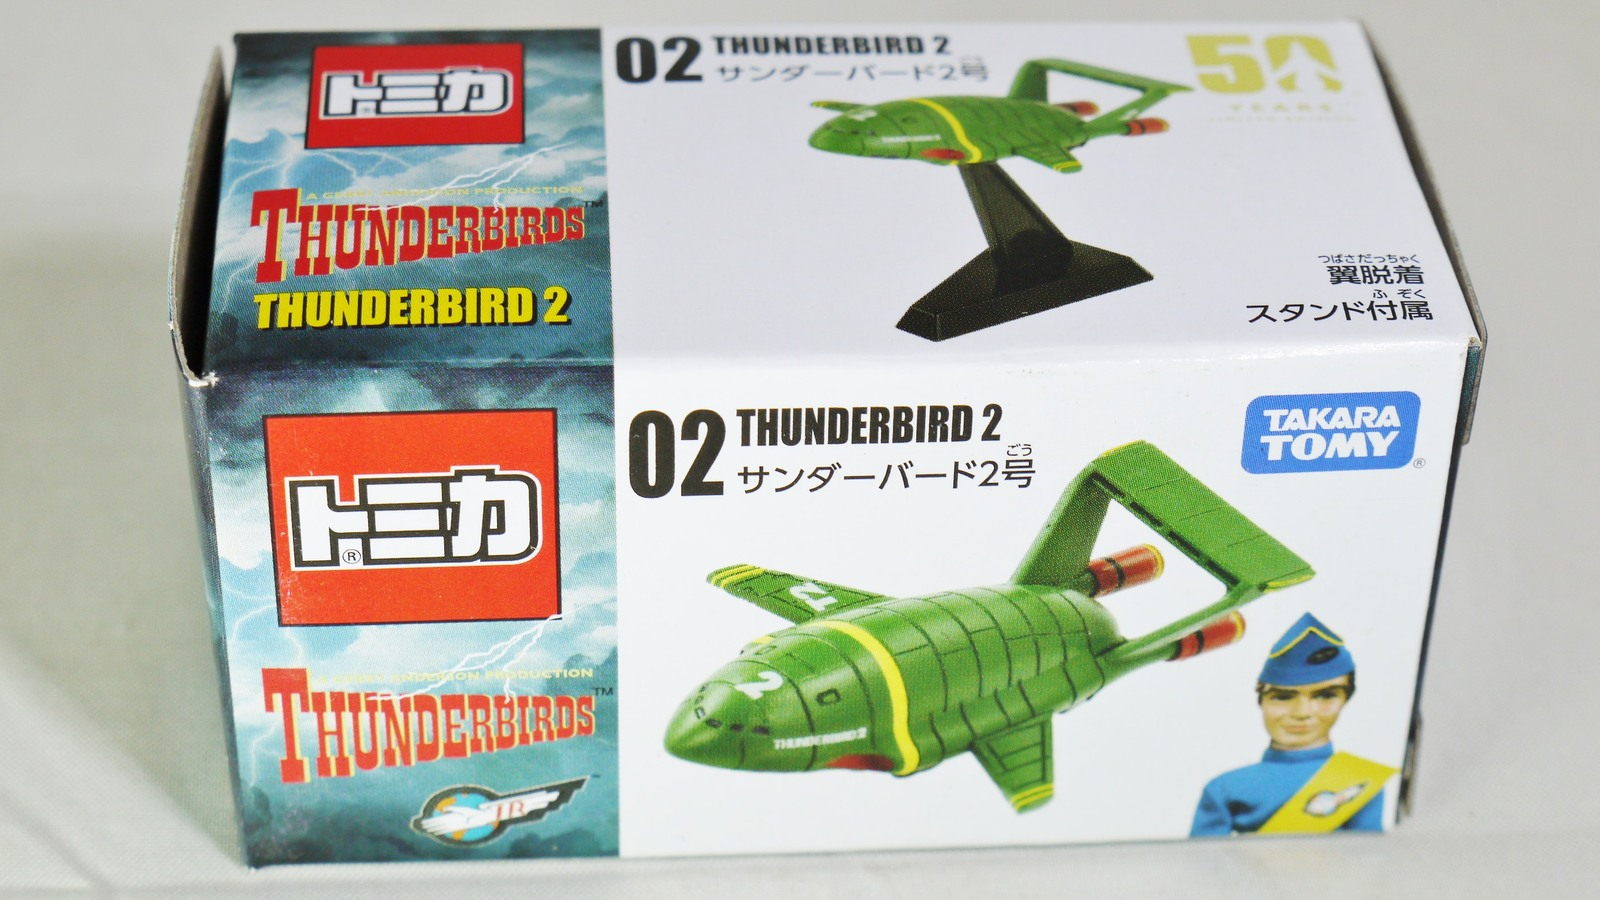 TAKARA TOMY TOMICA CLASSIC THUNDERBIRDS 50th Years Edition THUNDERBIRD 2